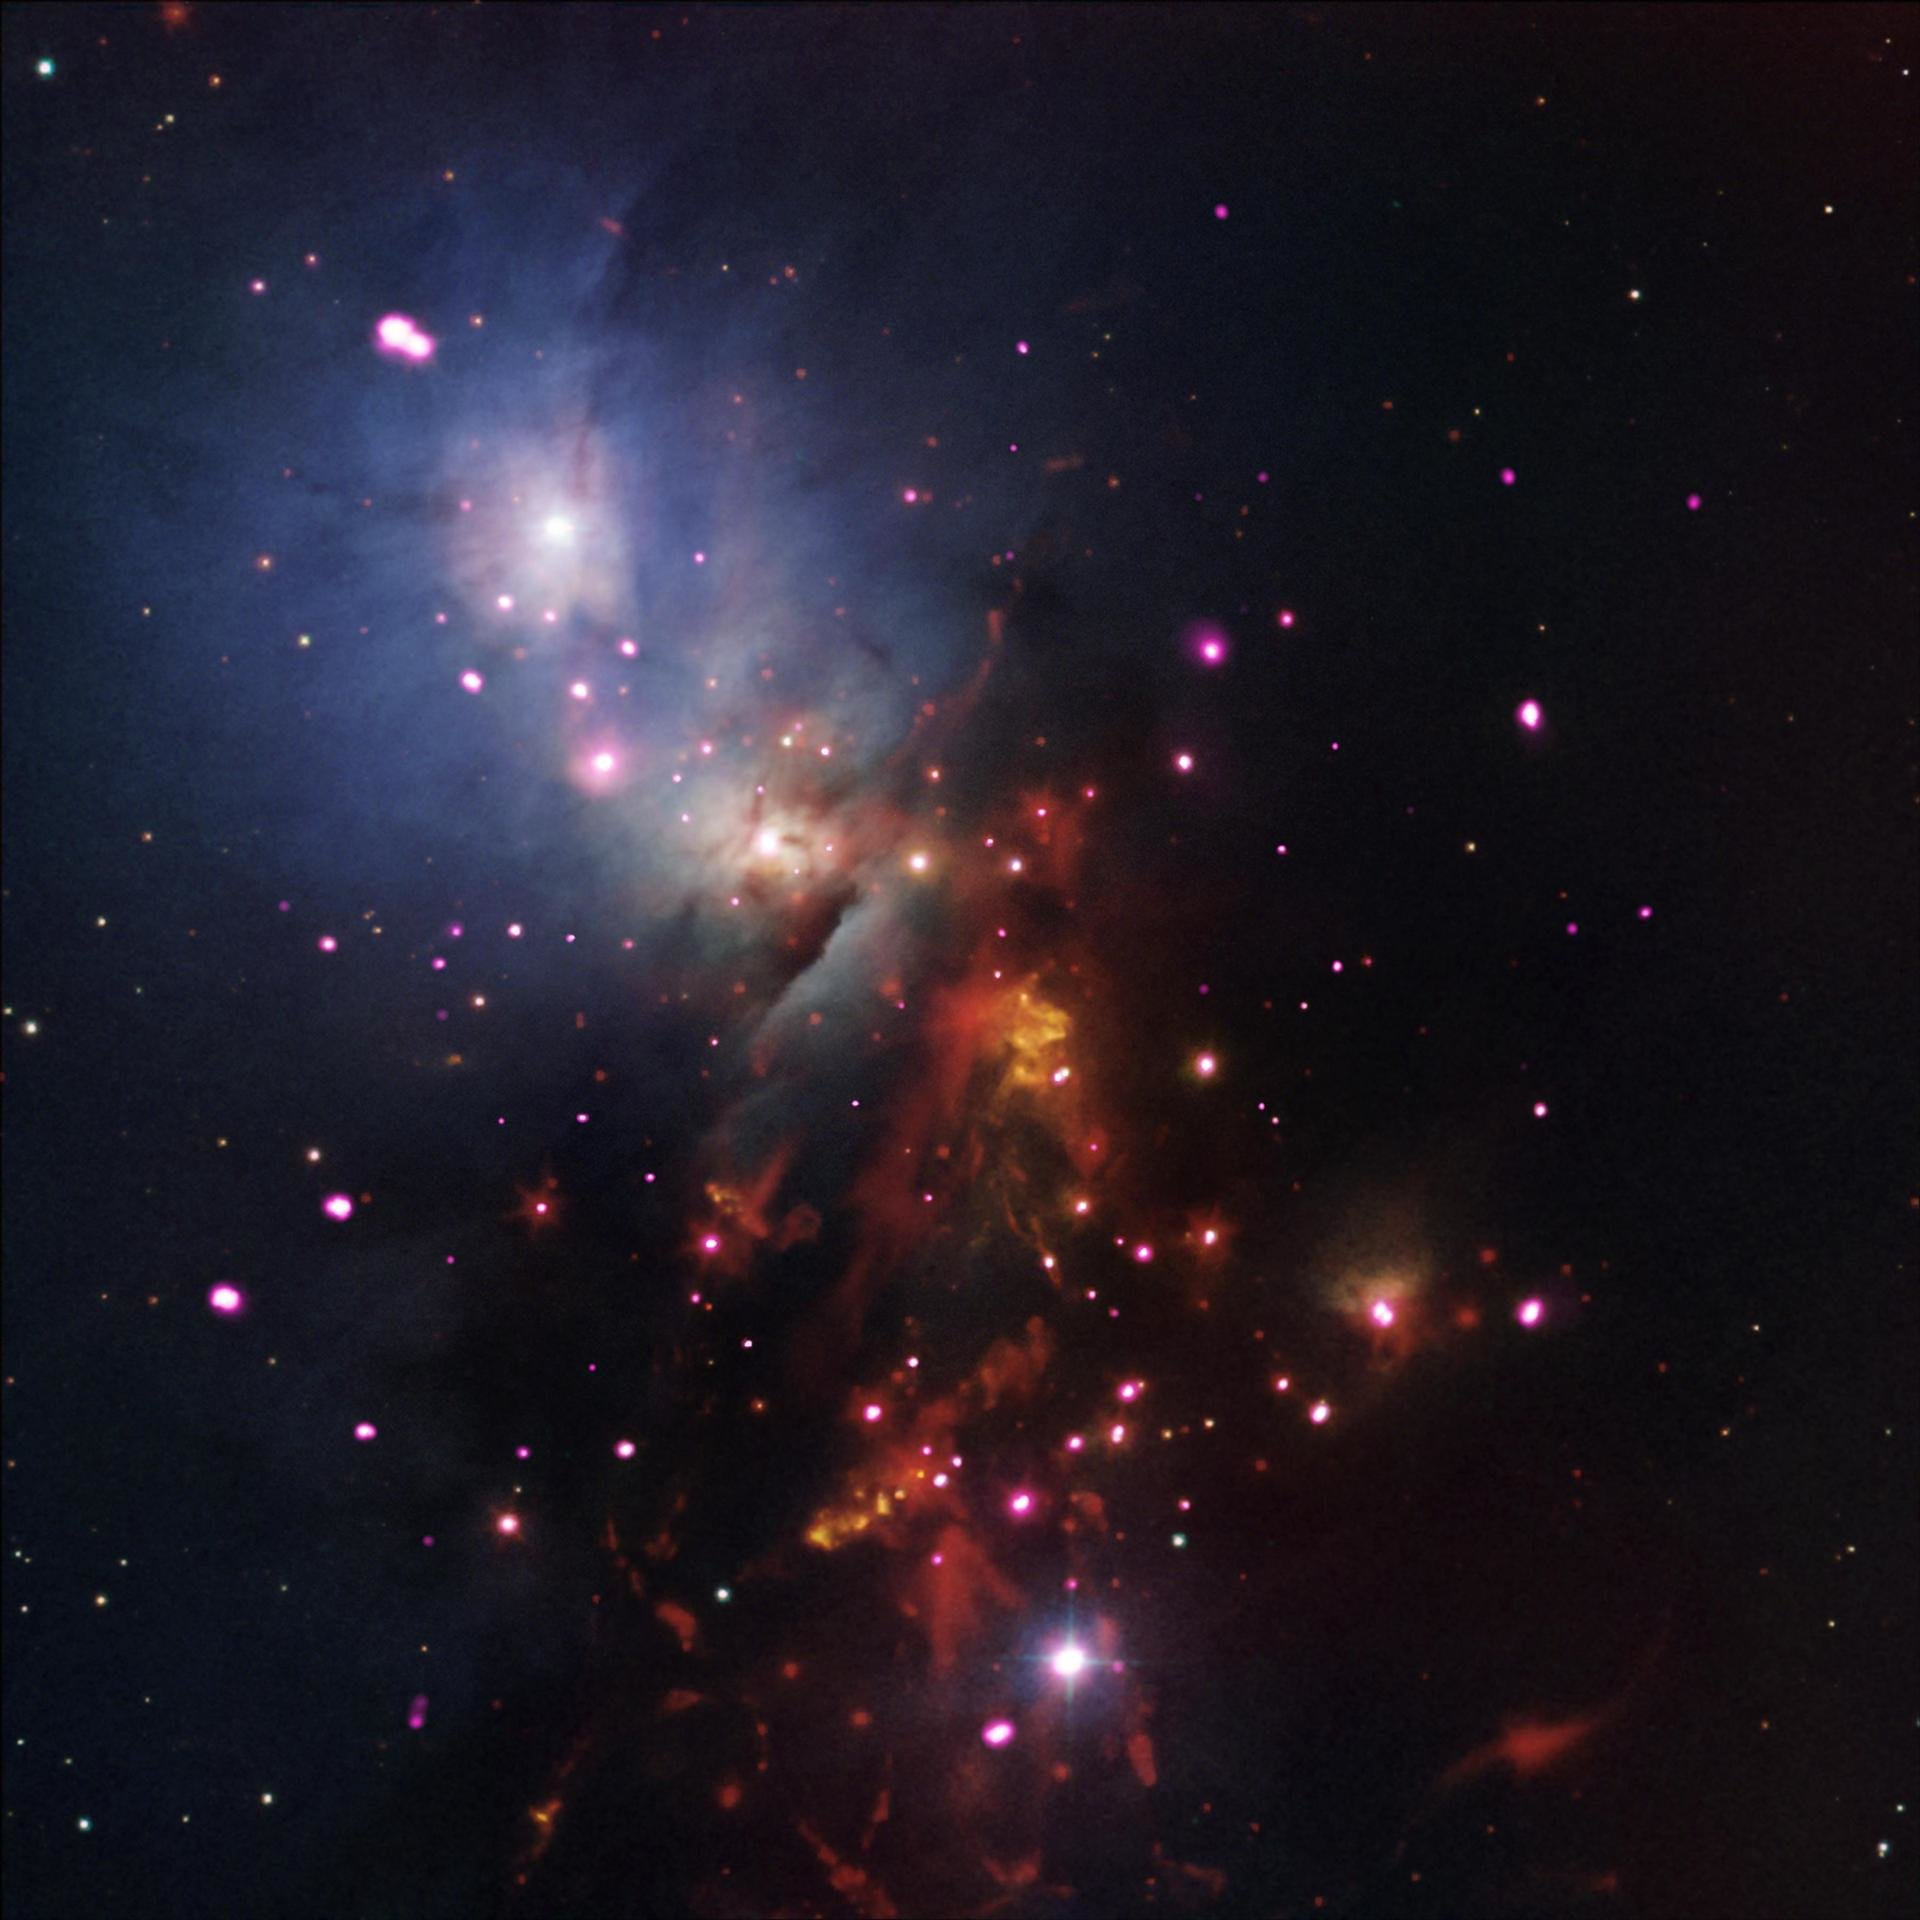 Astronomers have discovered an infrared halo around a neutron star 19